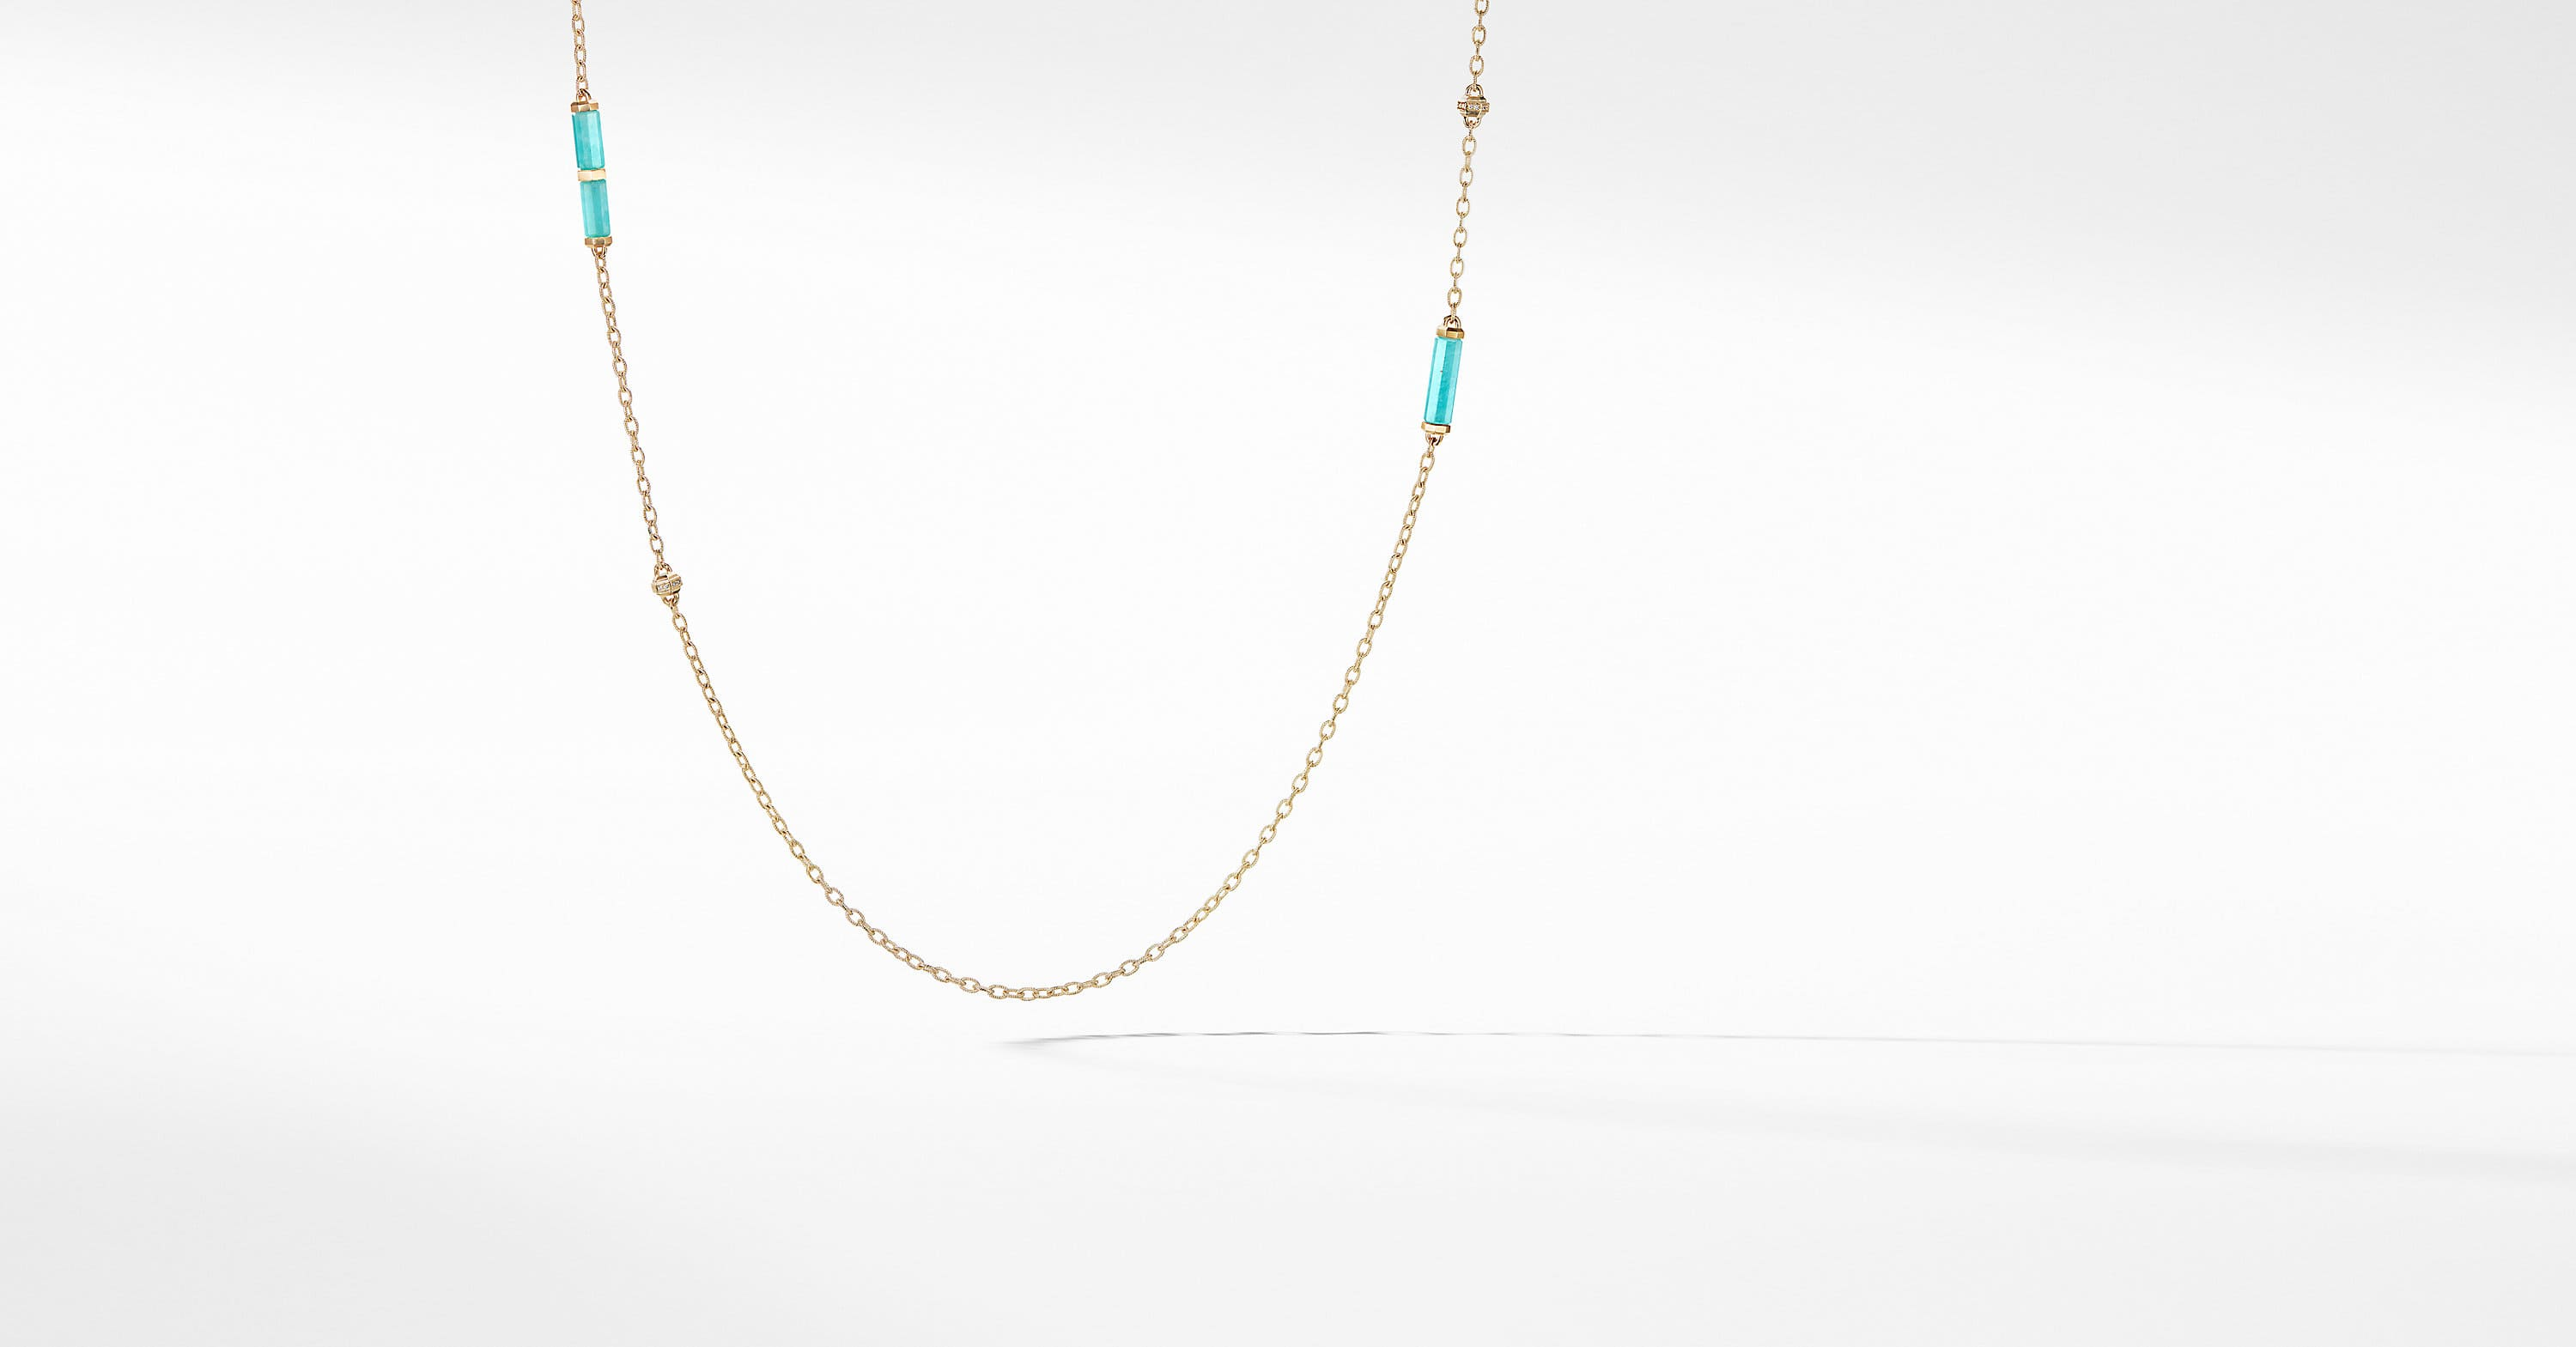 Barrels Long Station Necklace with Diamonds in 18K Gold